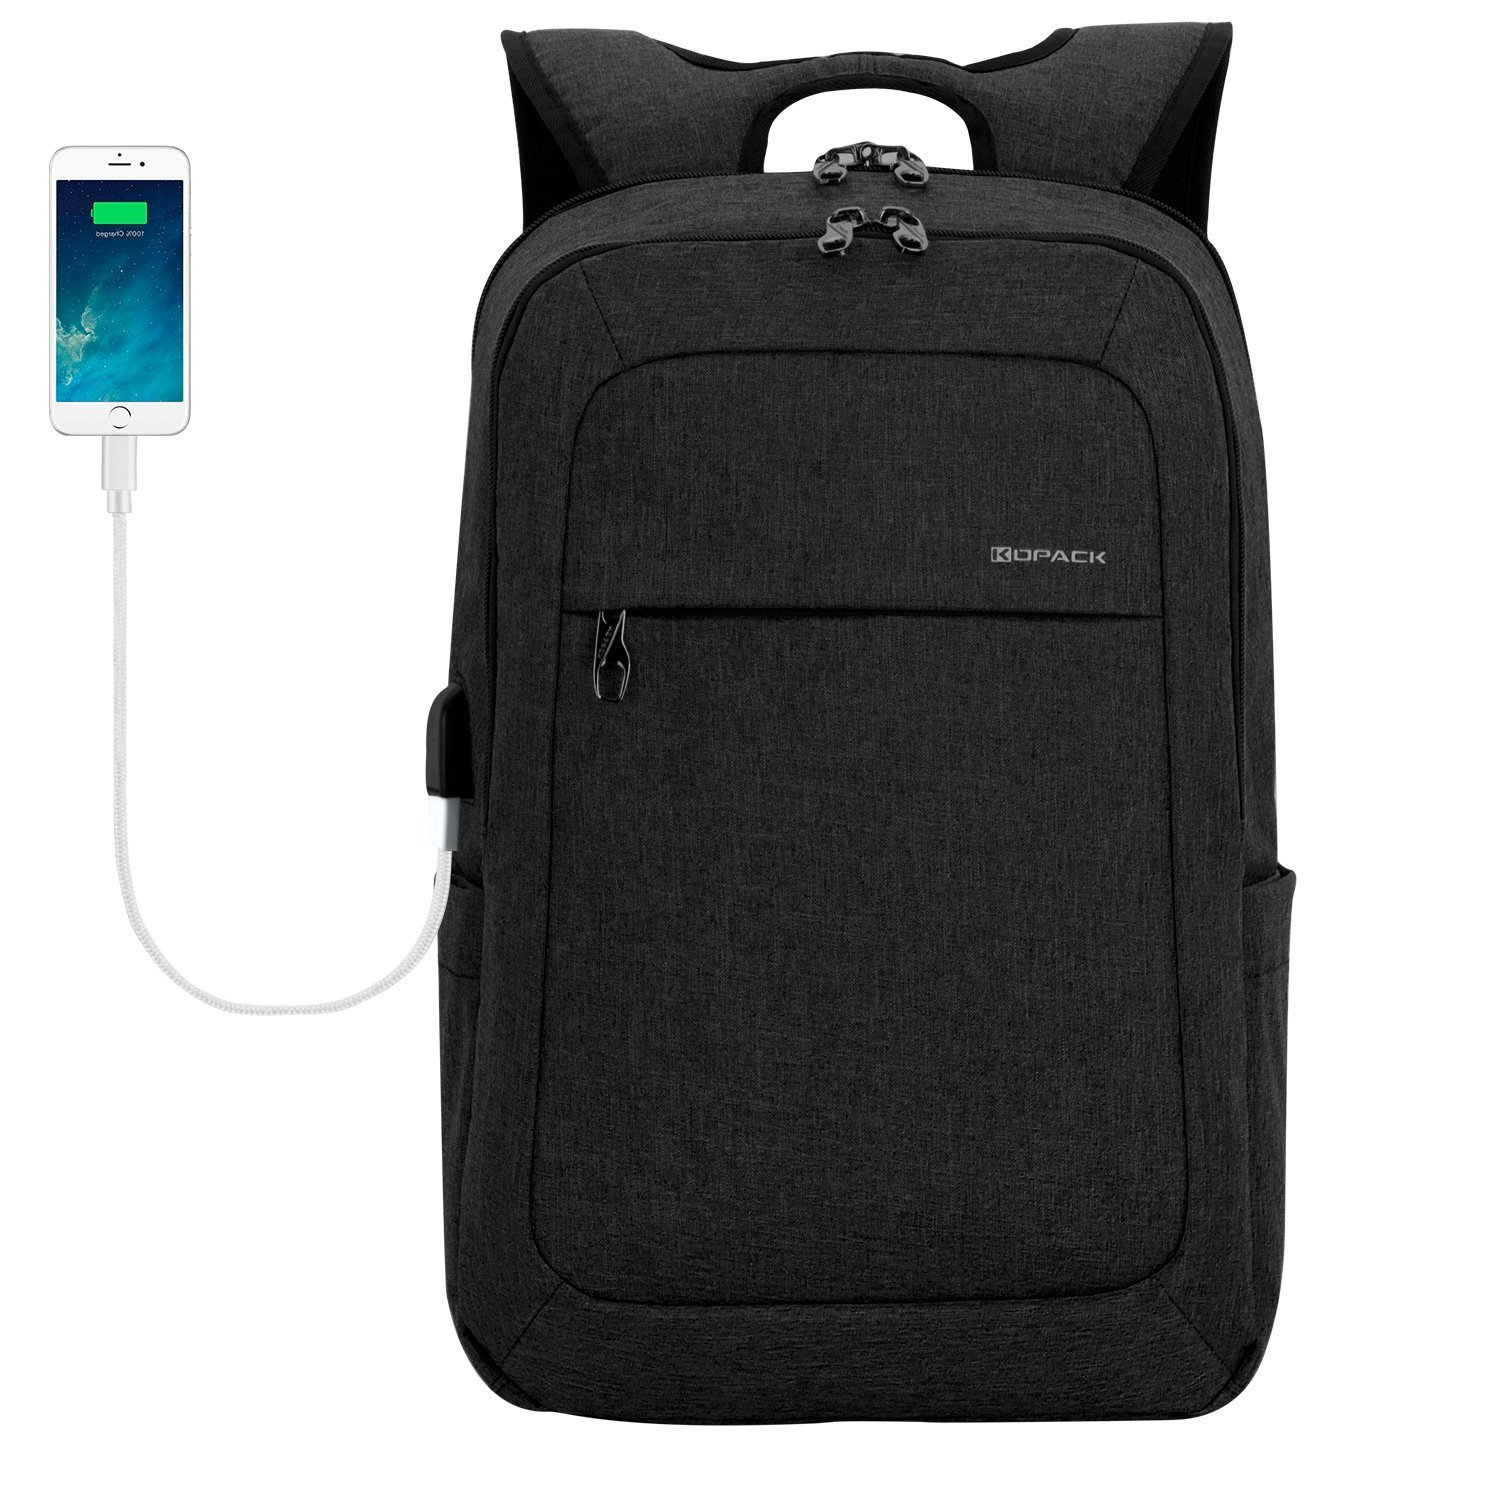 KOPACK Lightweight Laptop Backpack USB Water Resistant 15.6 Inch Business Slim Back Pack Charging Travel Bag